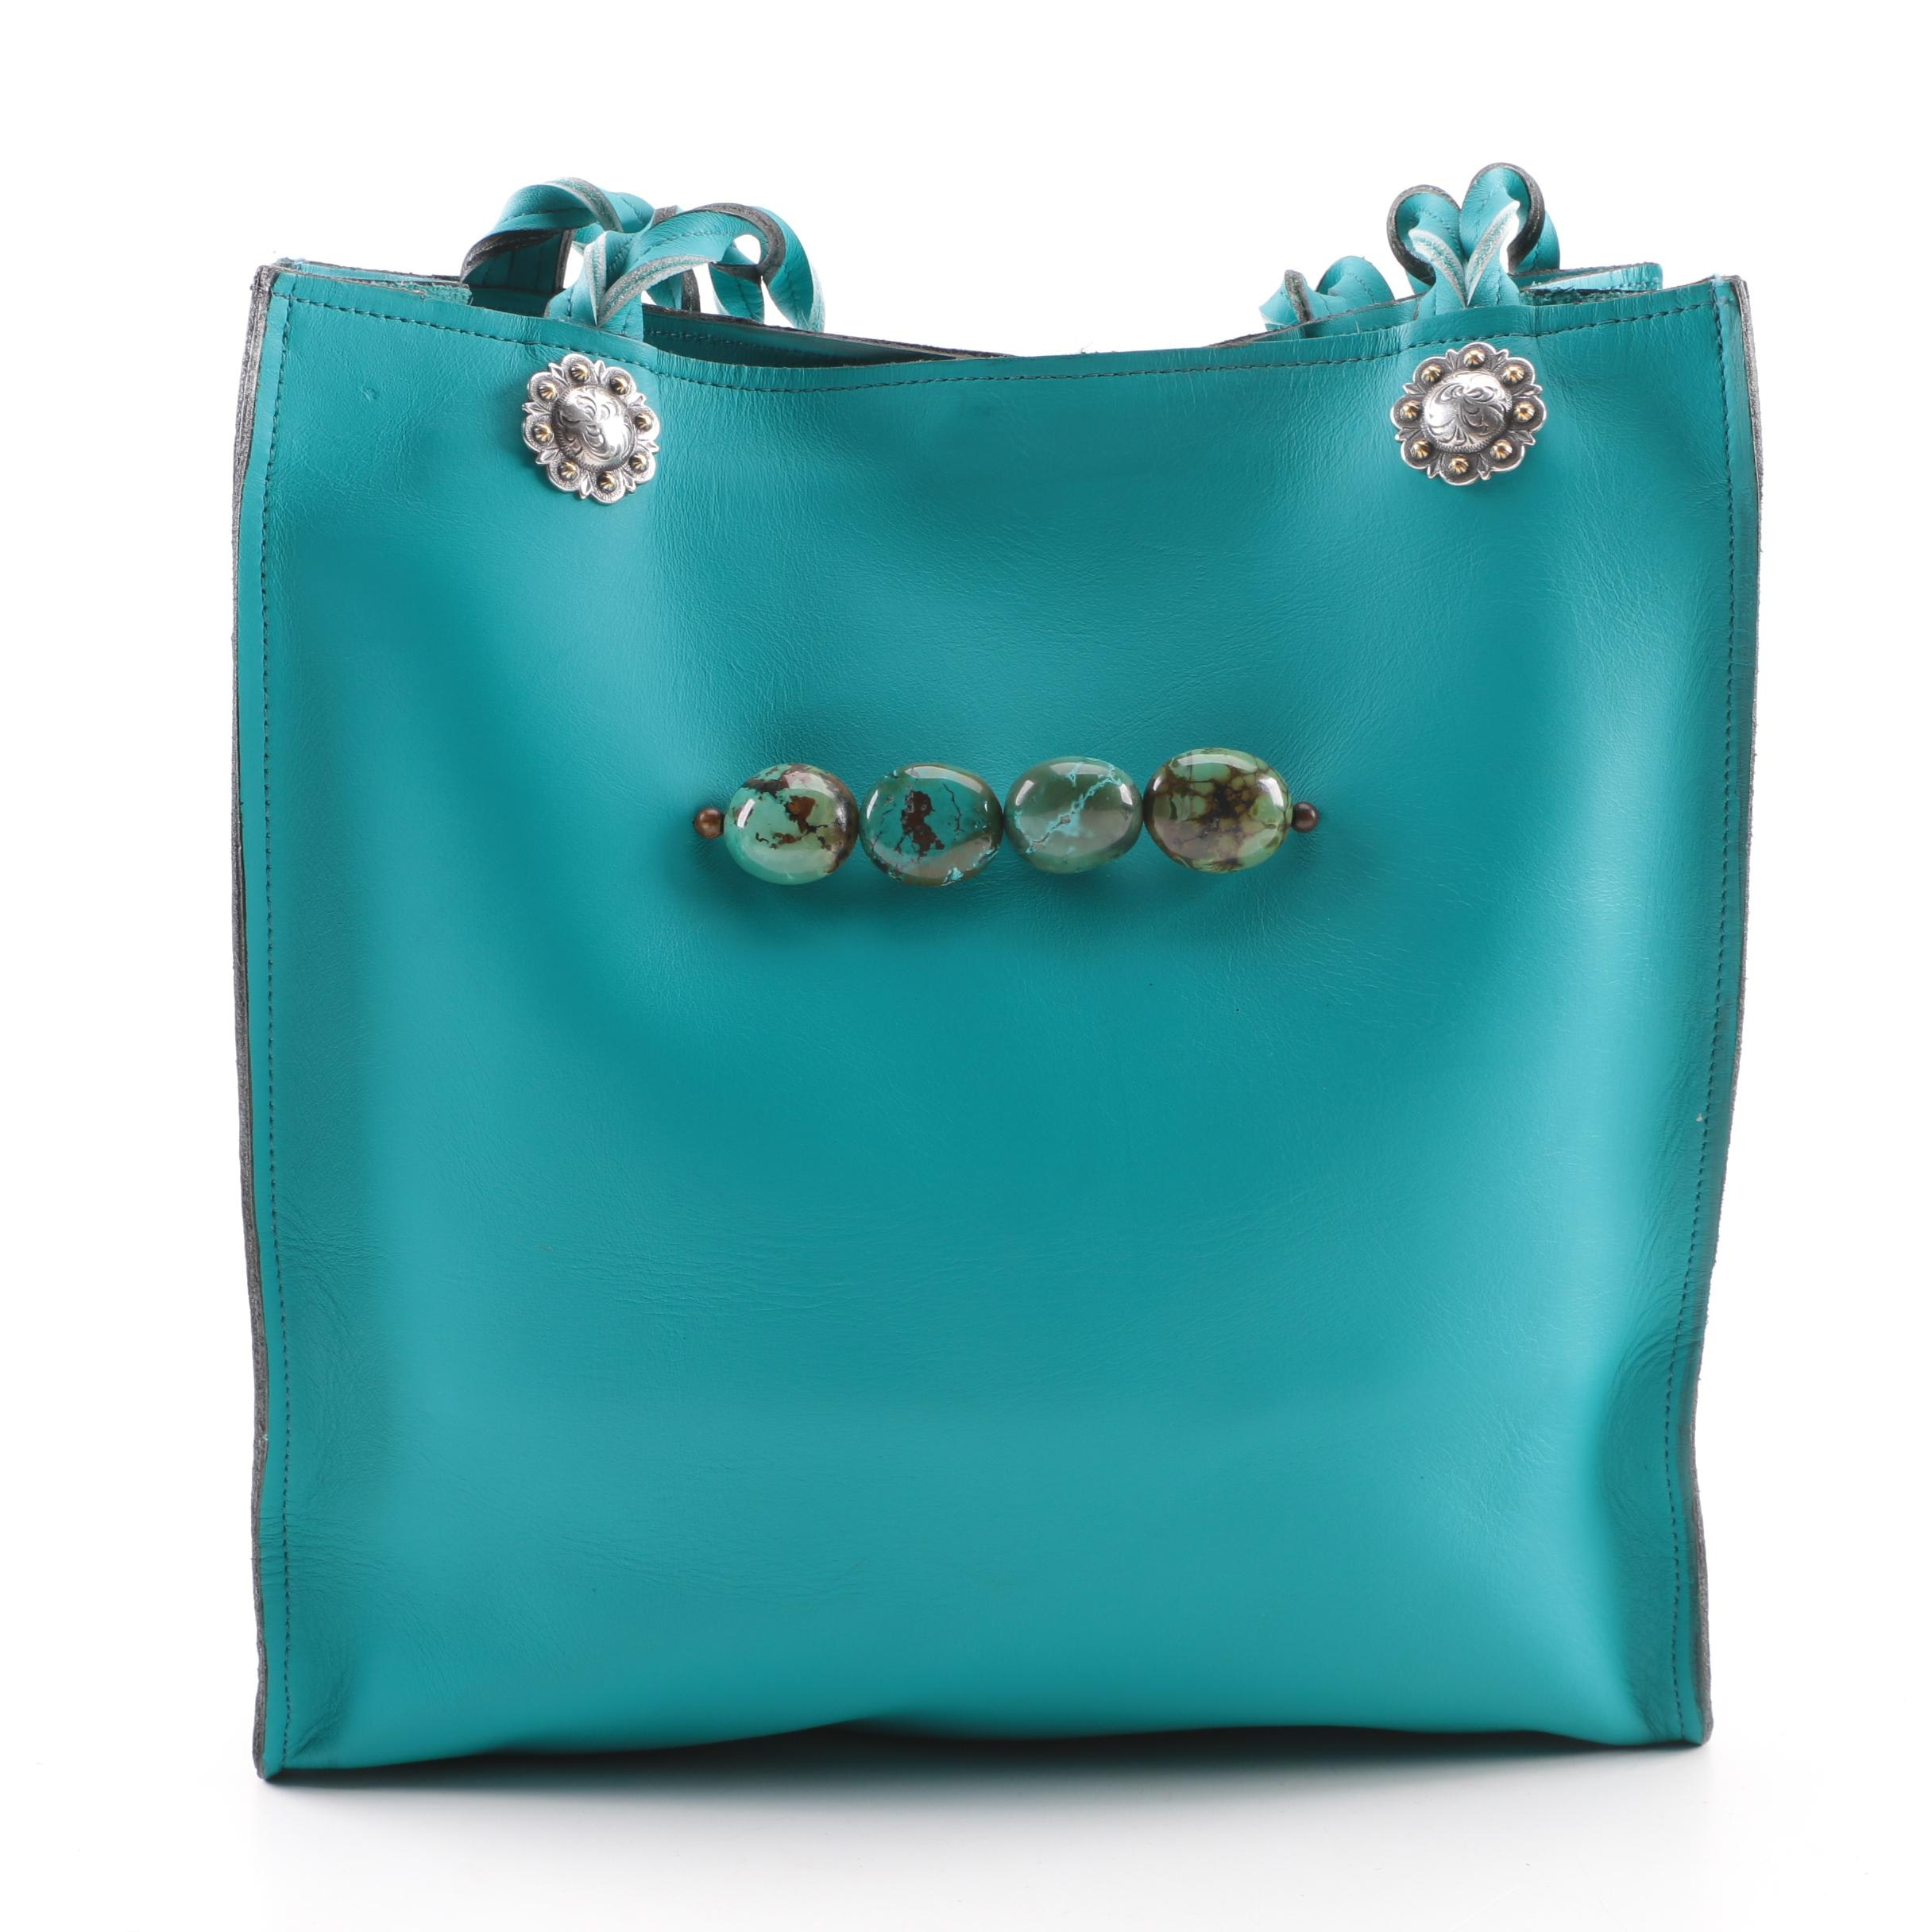 Paige Wallace Turquoise Leather Tote with Tumbled Turquoise Stone Bead Accents